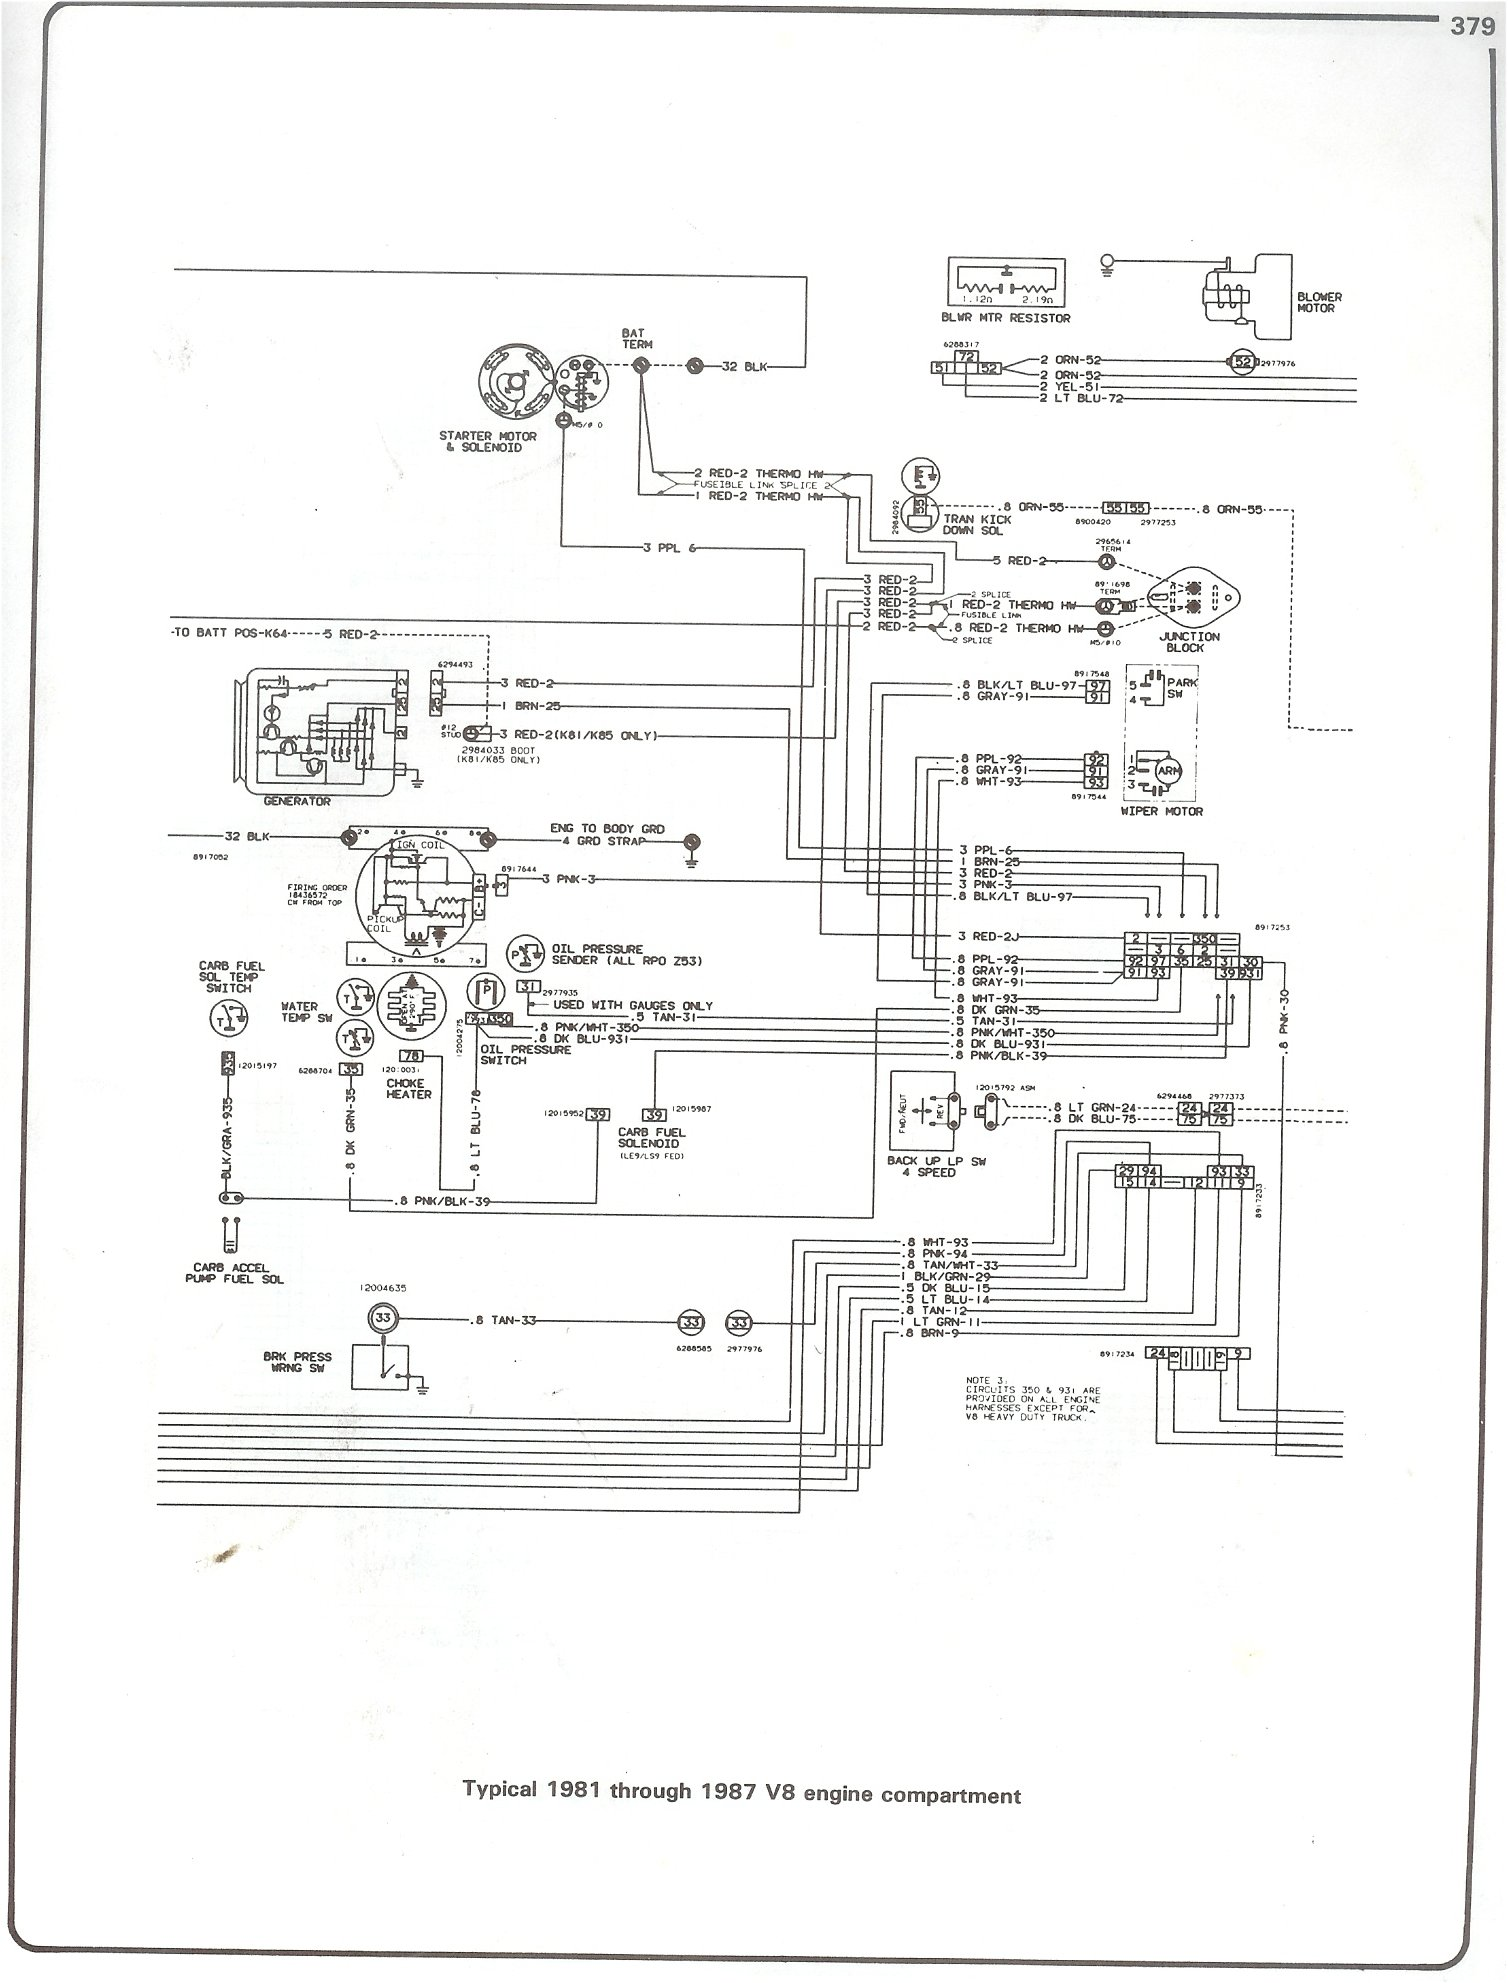 81 87_V8_engine complete 73 87 wiring diagrams 1985 chevy c10 fuse box diagram at pacquiaovsvargaslive.co